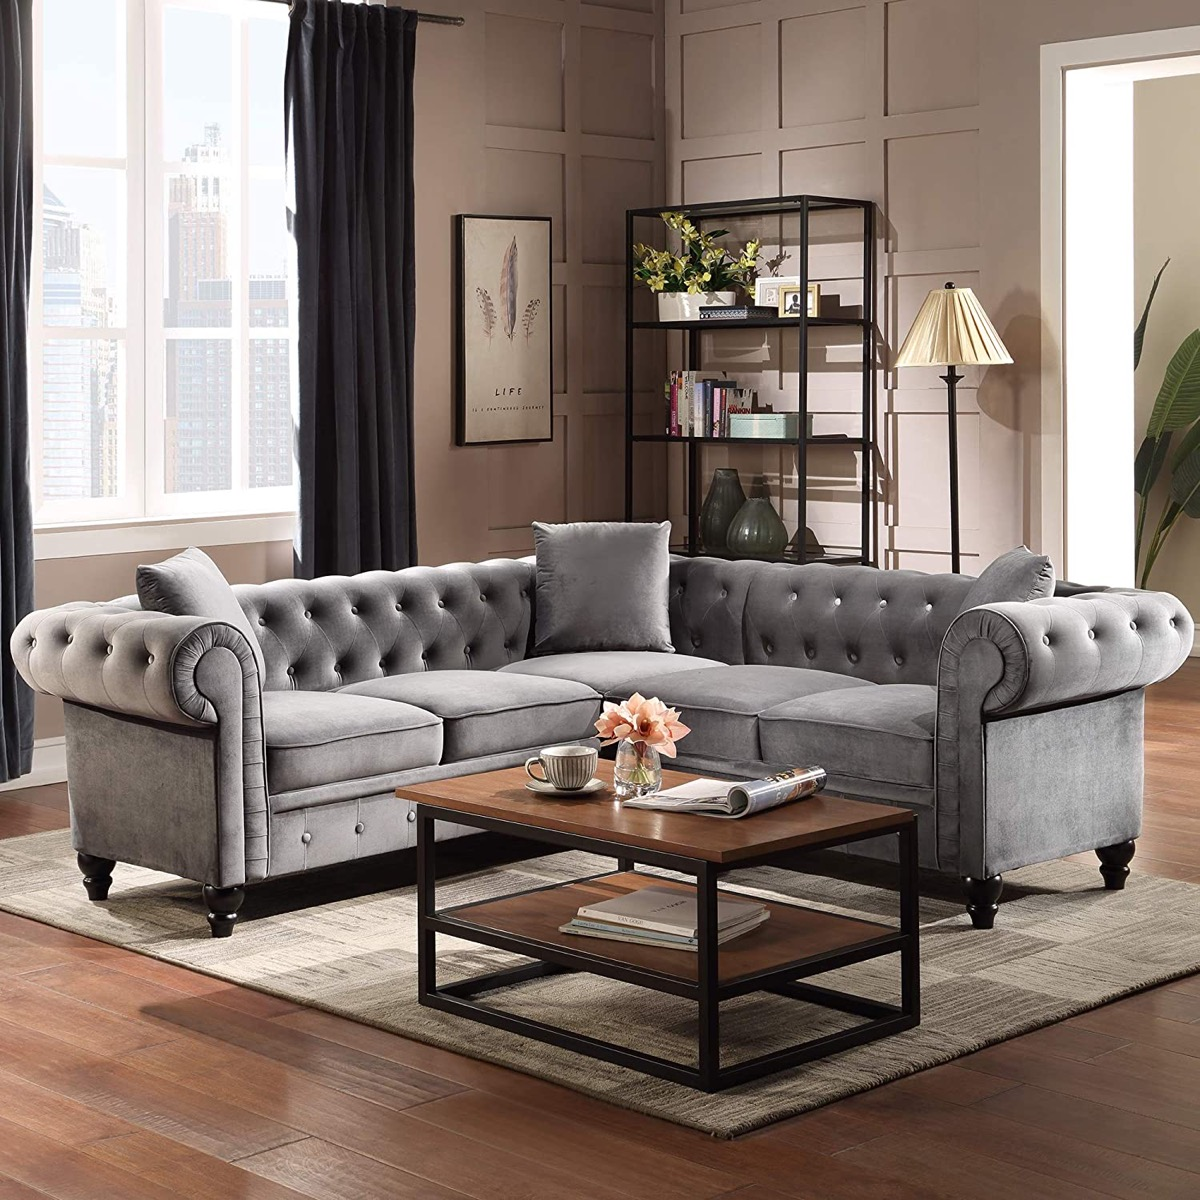 small-spaces-sectional-sofa